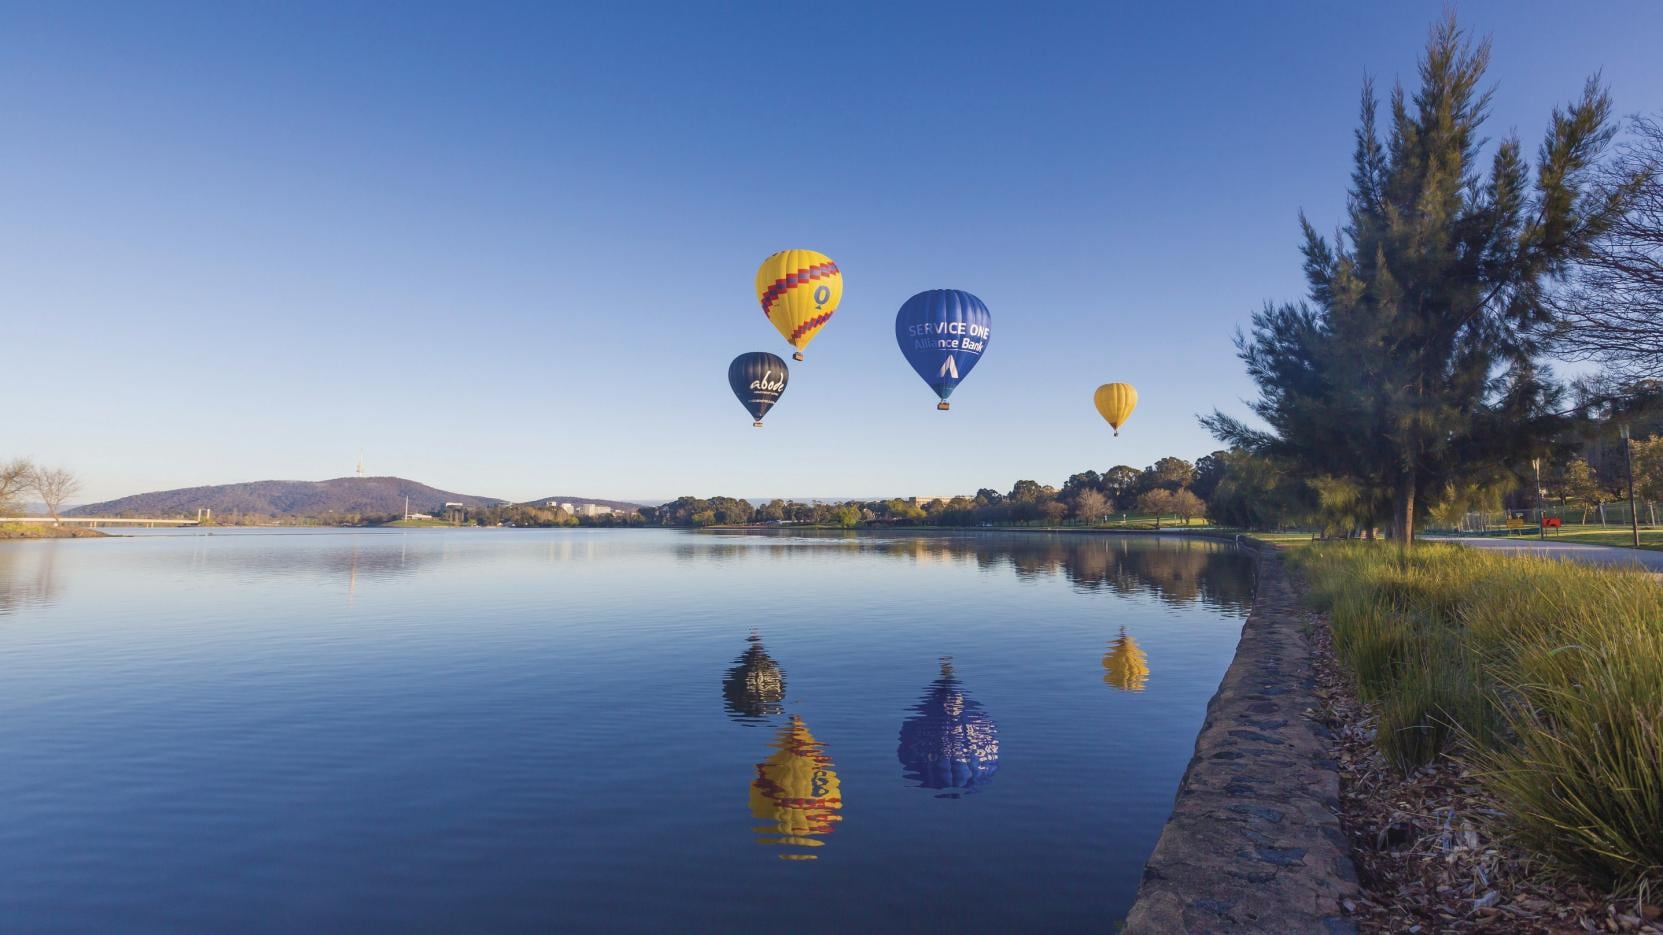 Balloons over Lake Burley Griffin, Canberra, ACT © Visit Canberra